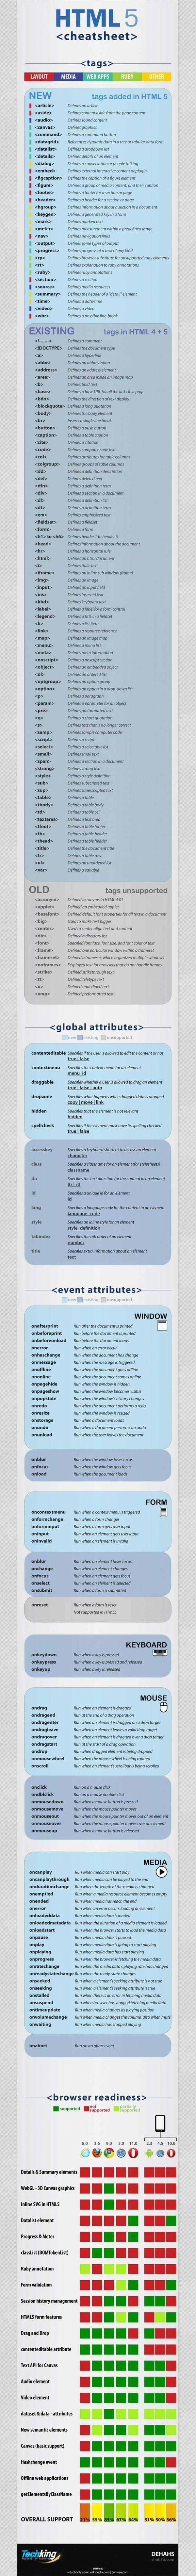 Hypertext Markup Language 5 (HTML5) Cheat sheet [Infographic] | Via: Just4Inspiration.com (#infographic #html #html5)